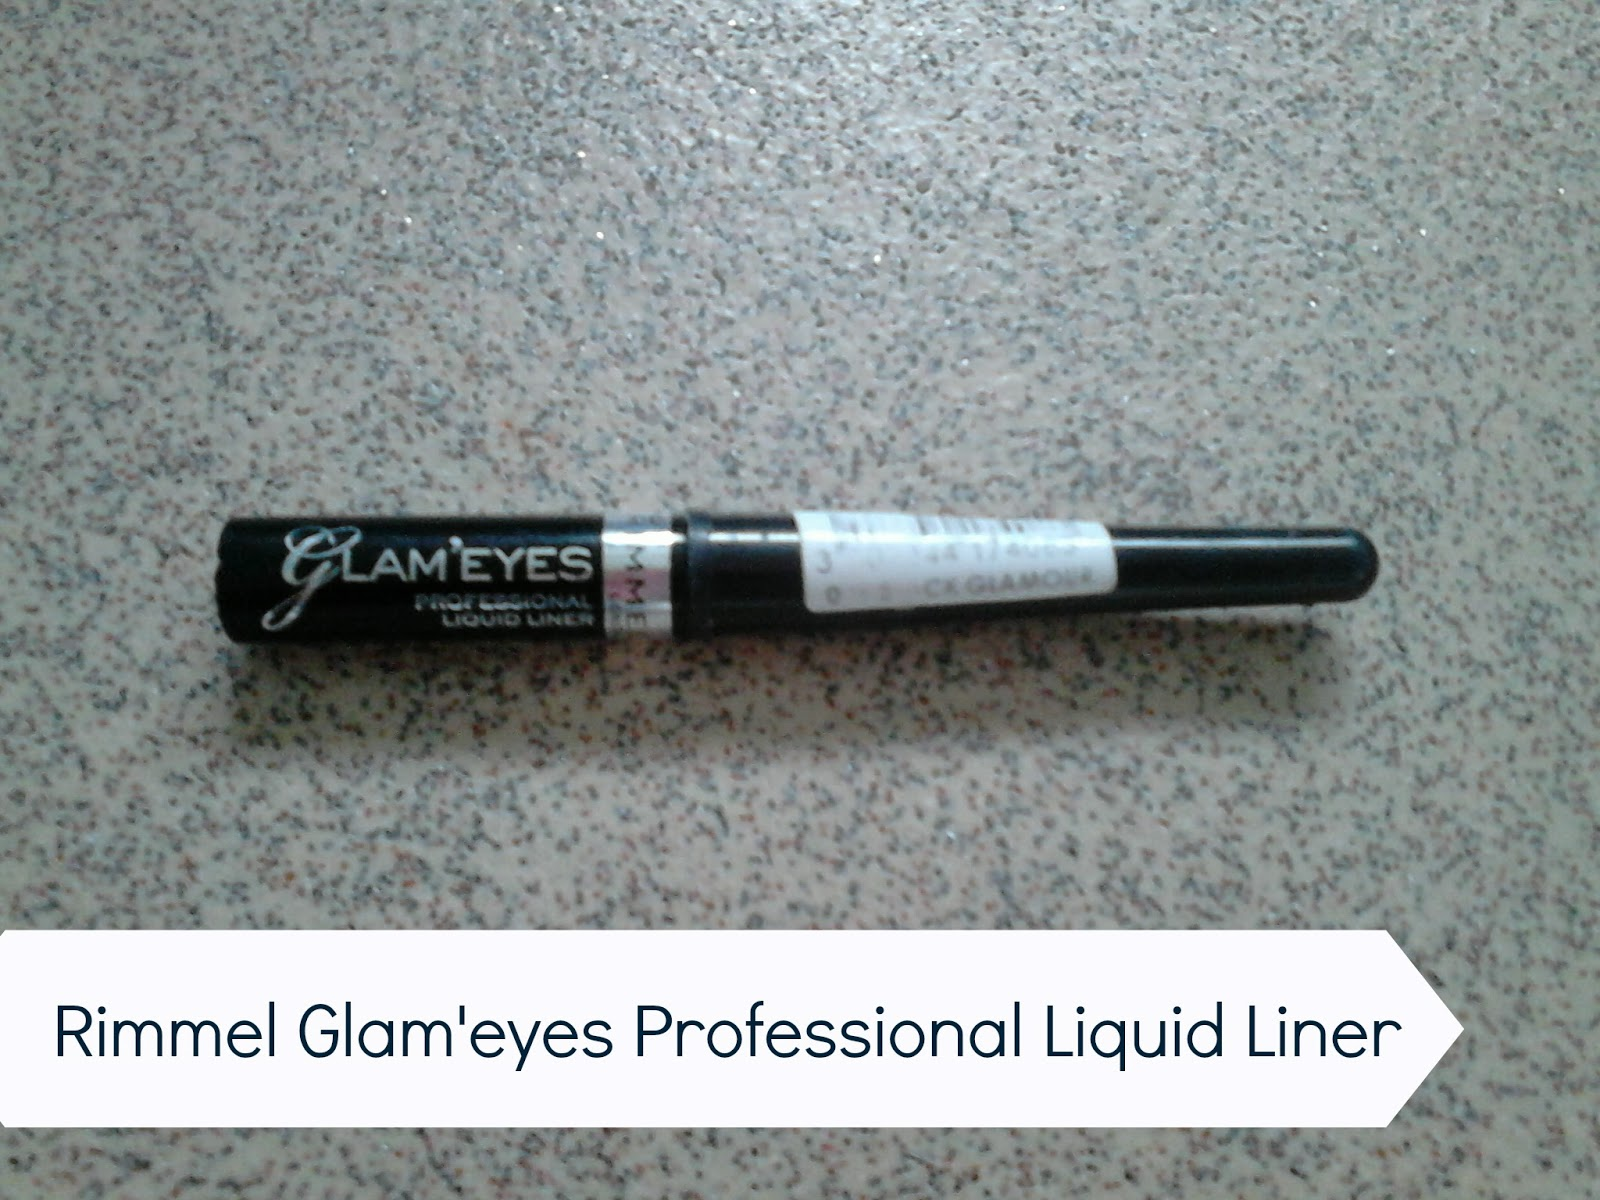 Rimmel Glam'eyes Professional Liquid Liner